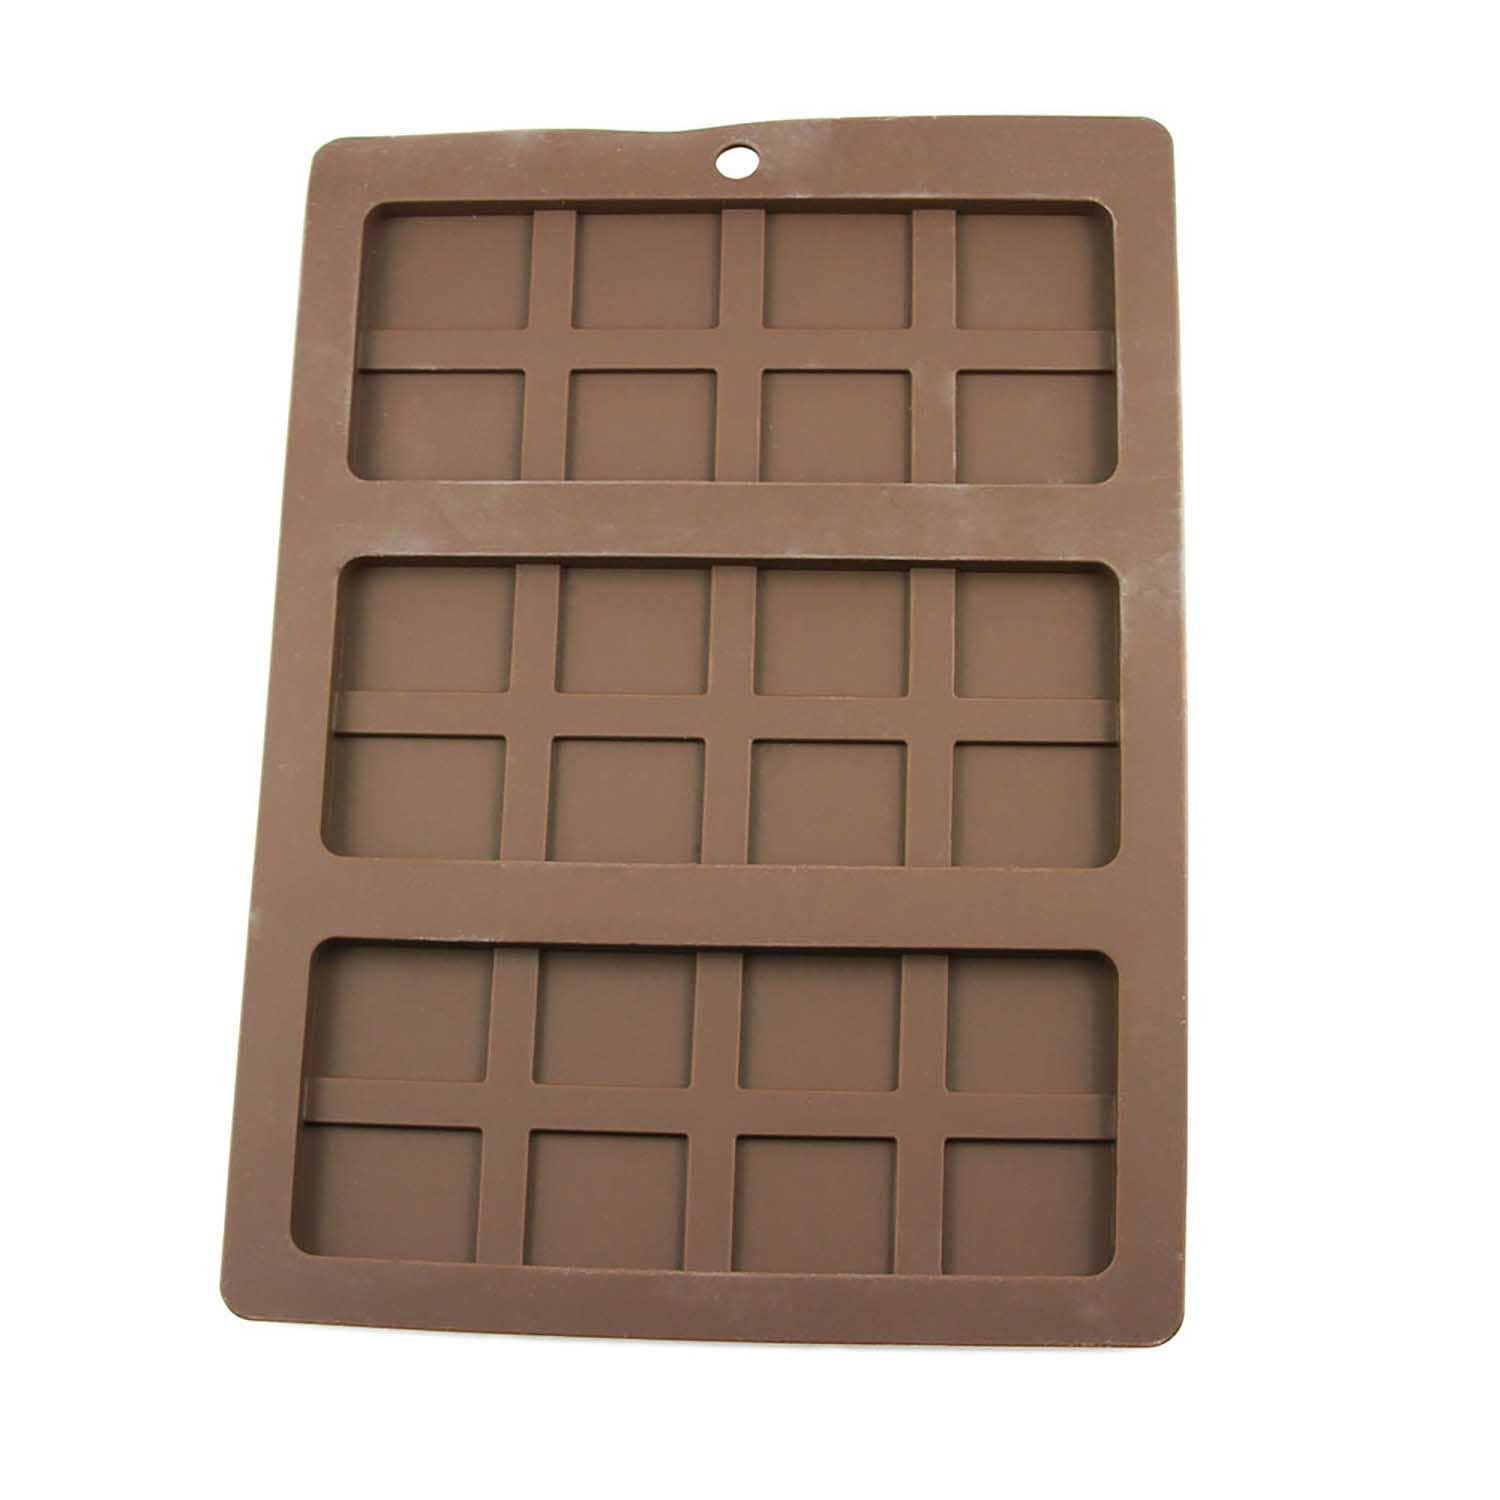 Silicone Chocolate Bar Mold